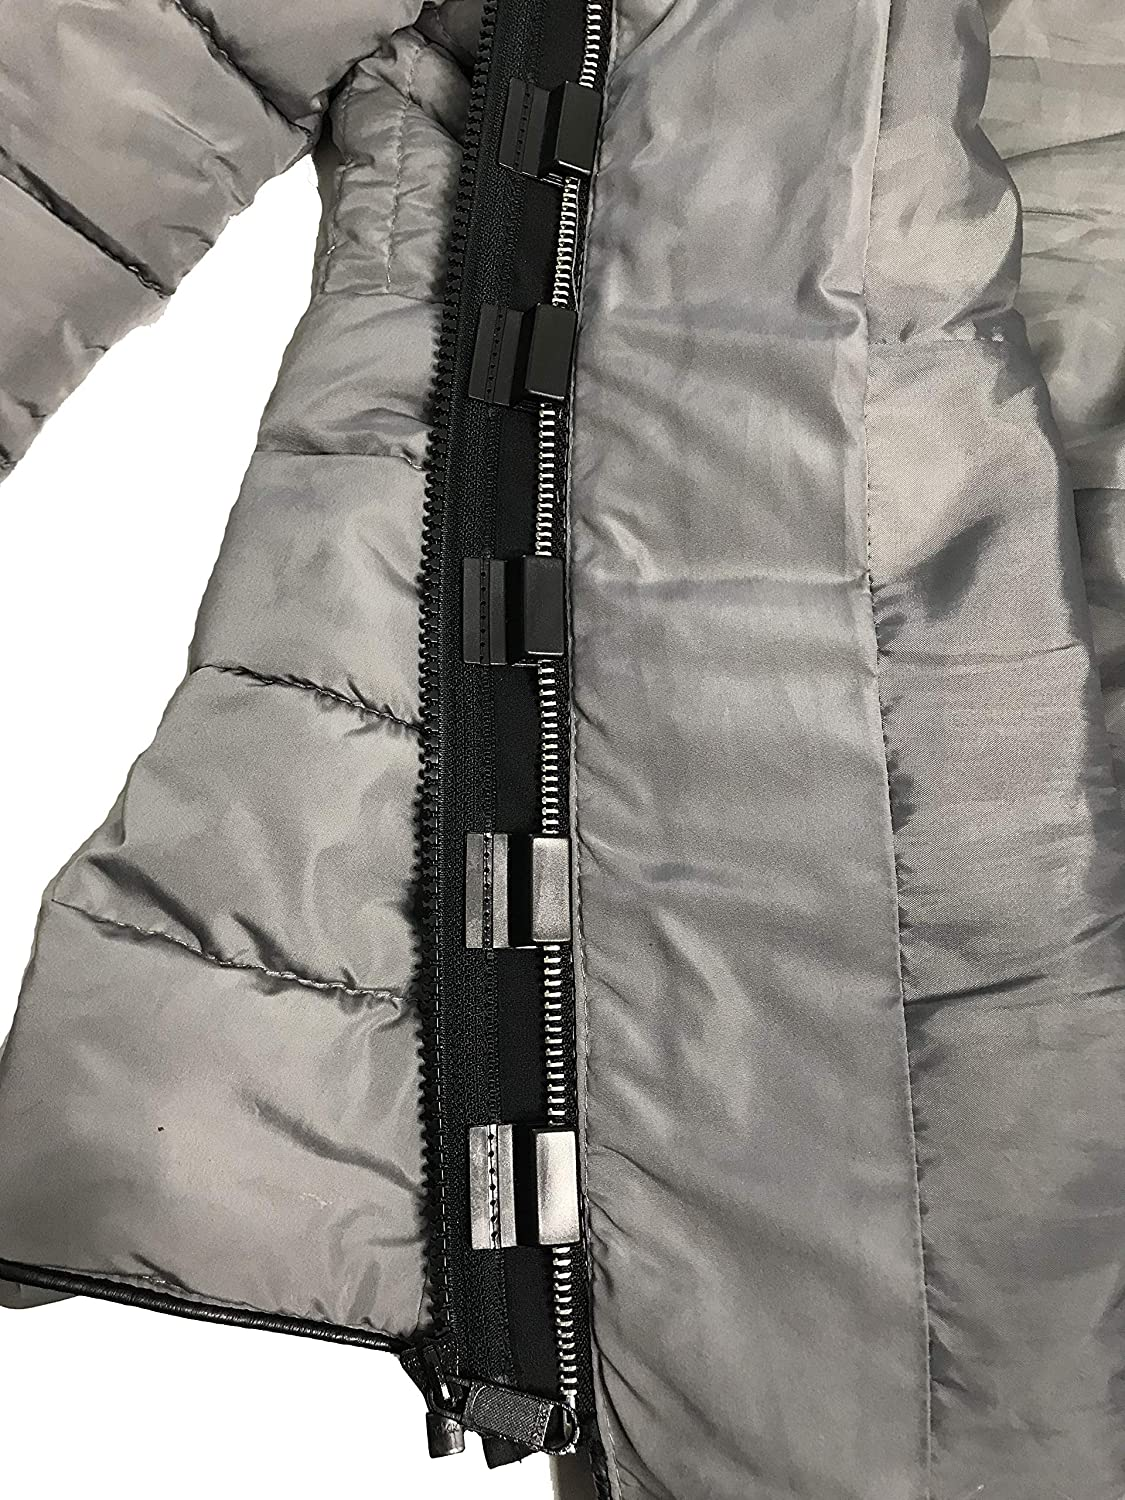 Turn Your own Jacket into a Maternity /& Babywearing Jacket Zip Us In Universal Jacket Expander Panel